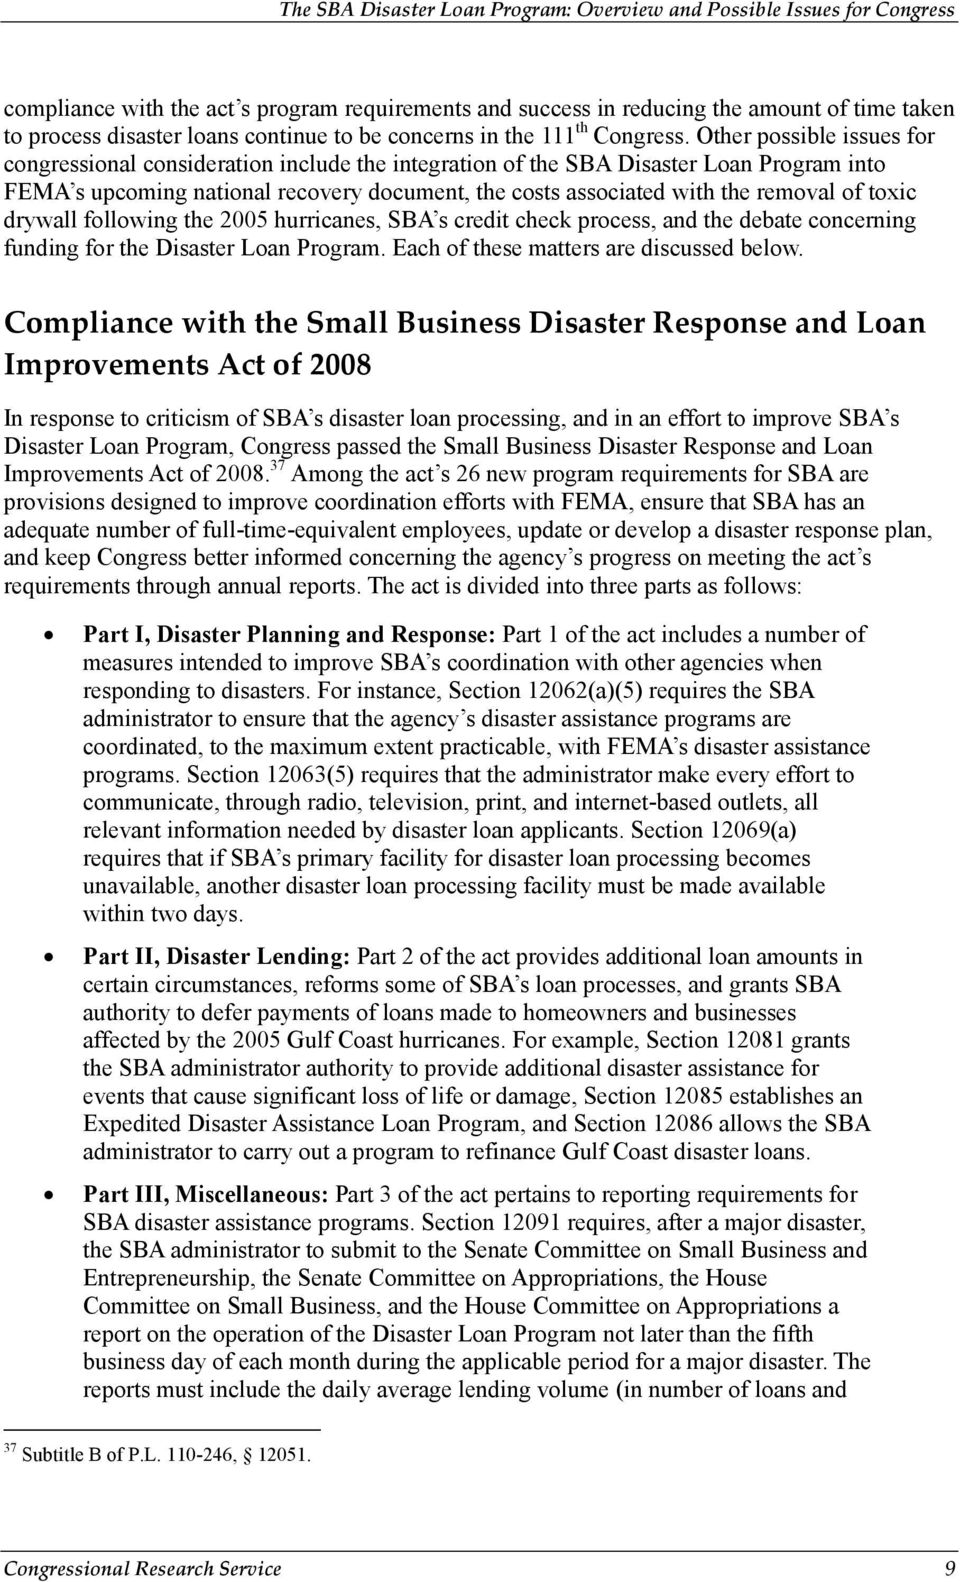 of toxic drywall following the 2005 hurricanes, SBA s credit check process, and the debate concerning funding for the Disaster Loan Program. Each of these matters are discussed below.